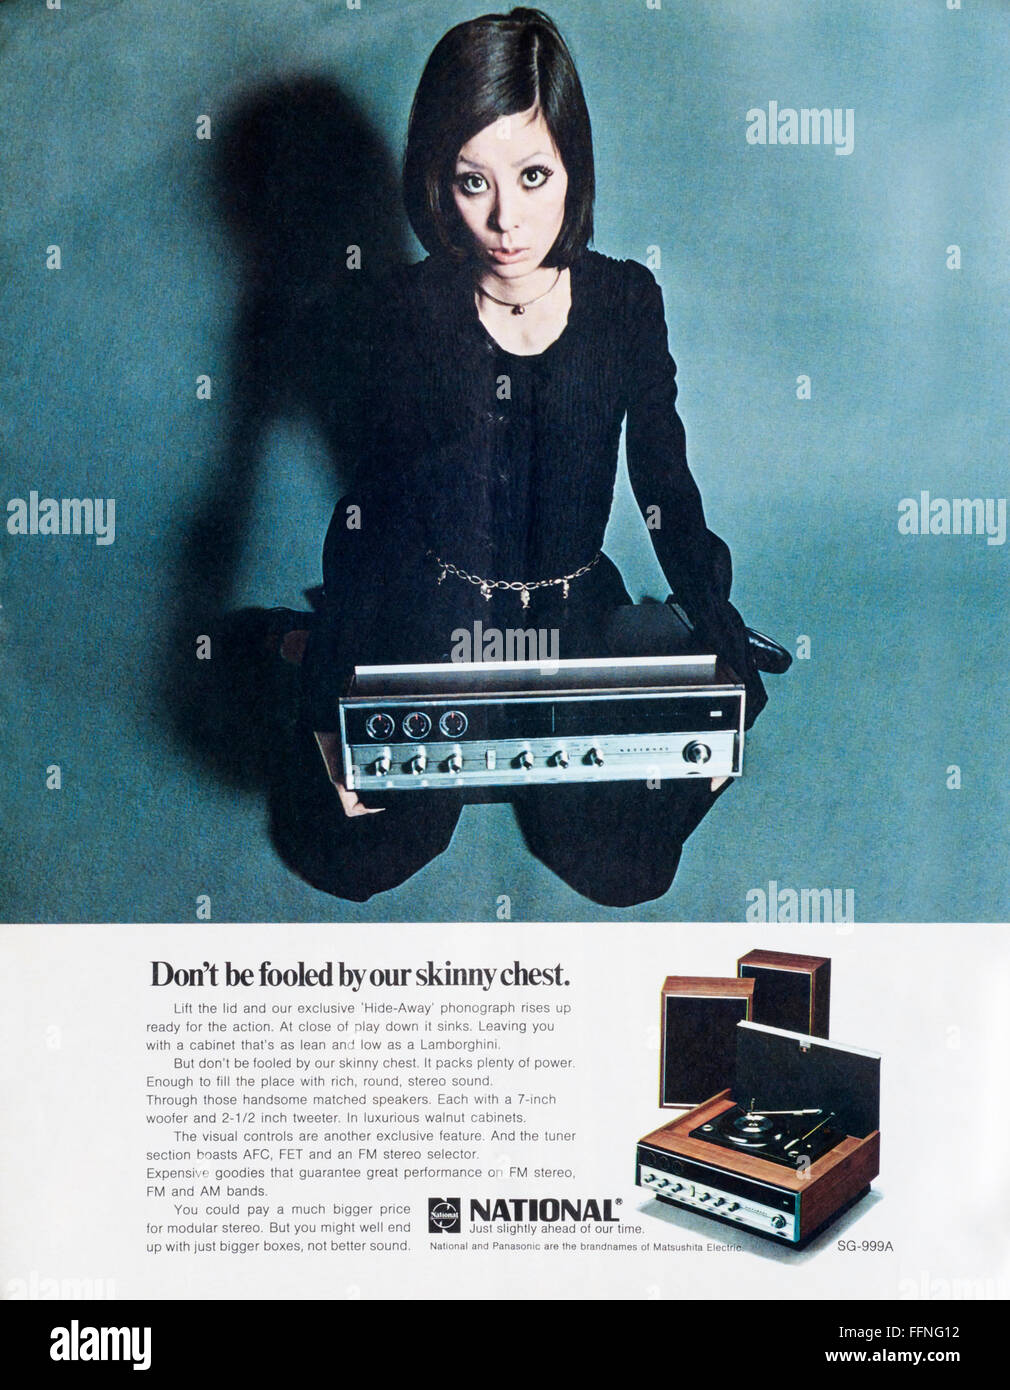 1970s magazine advertisement advertising National Panasonic phonographs - Stock Image